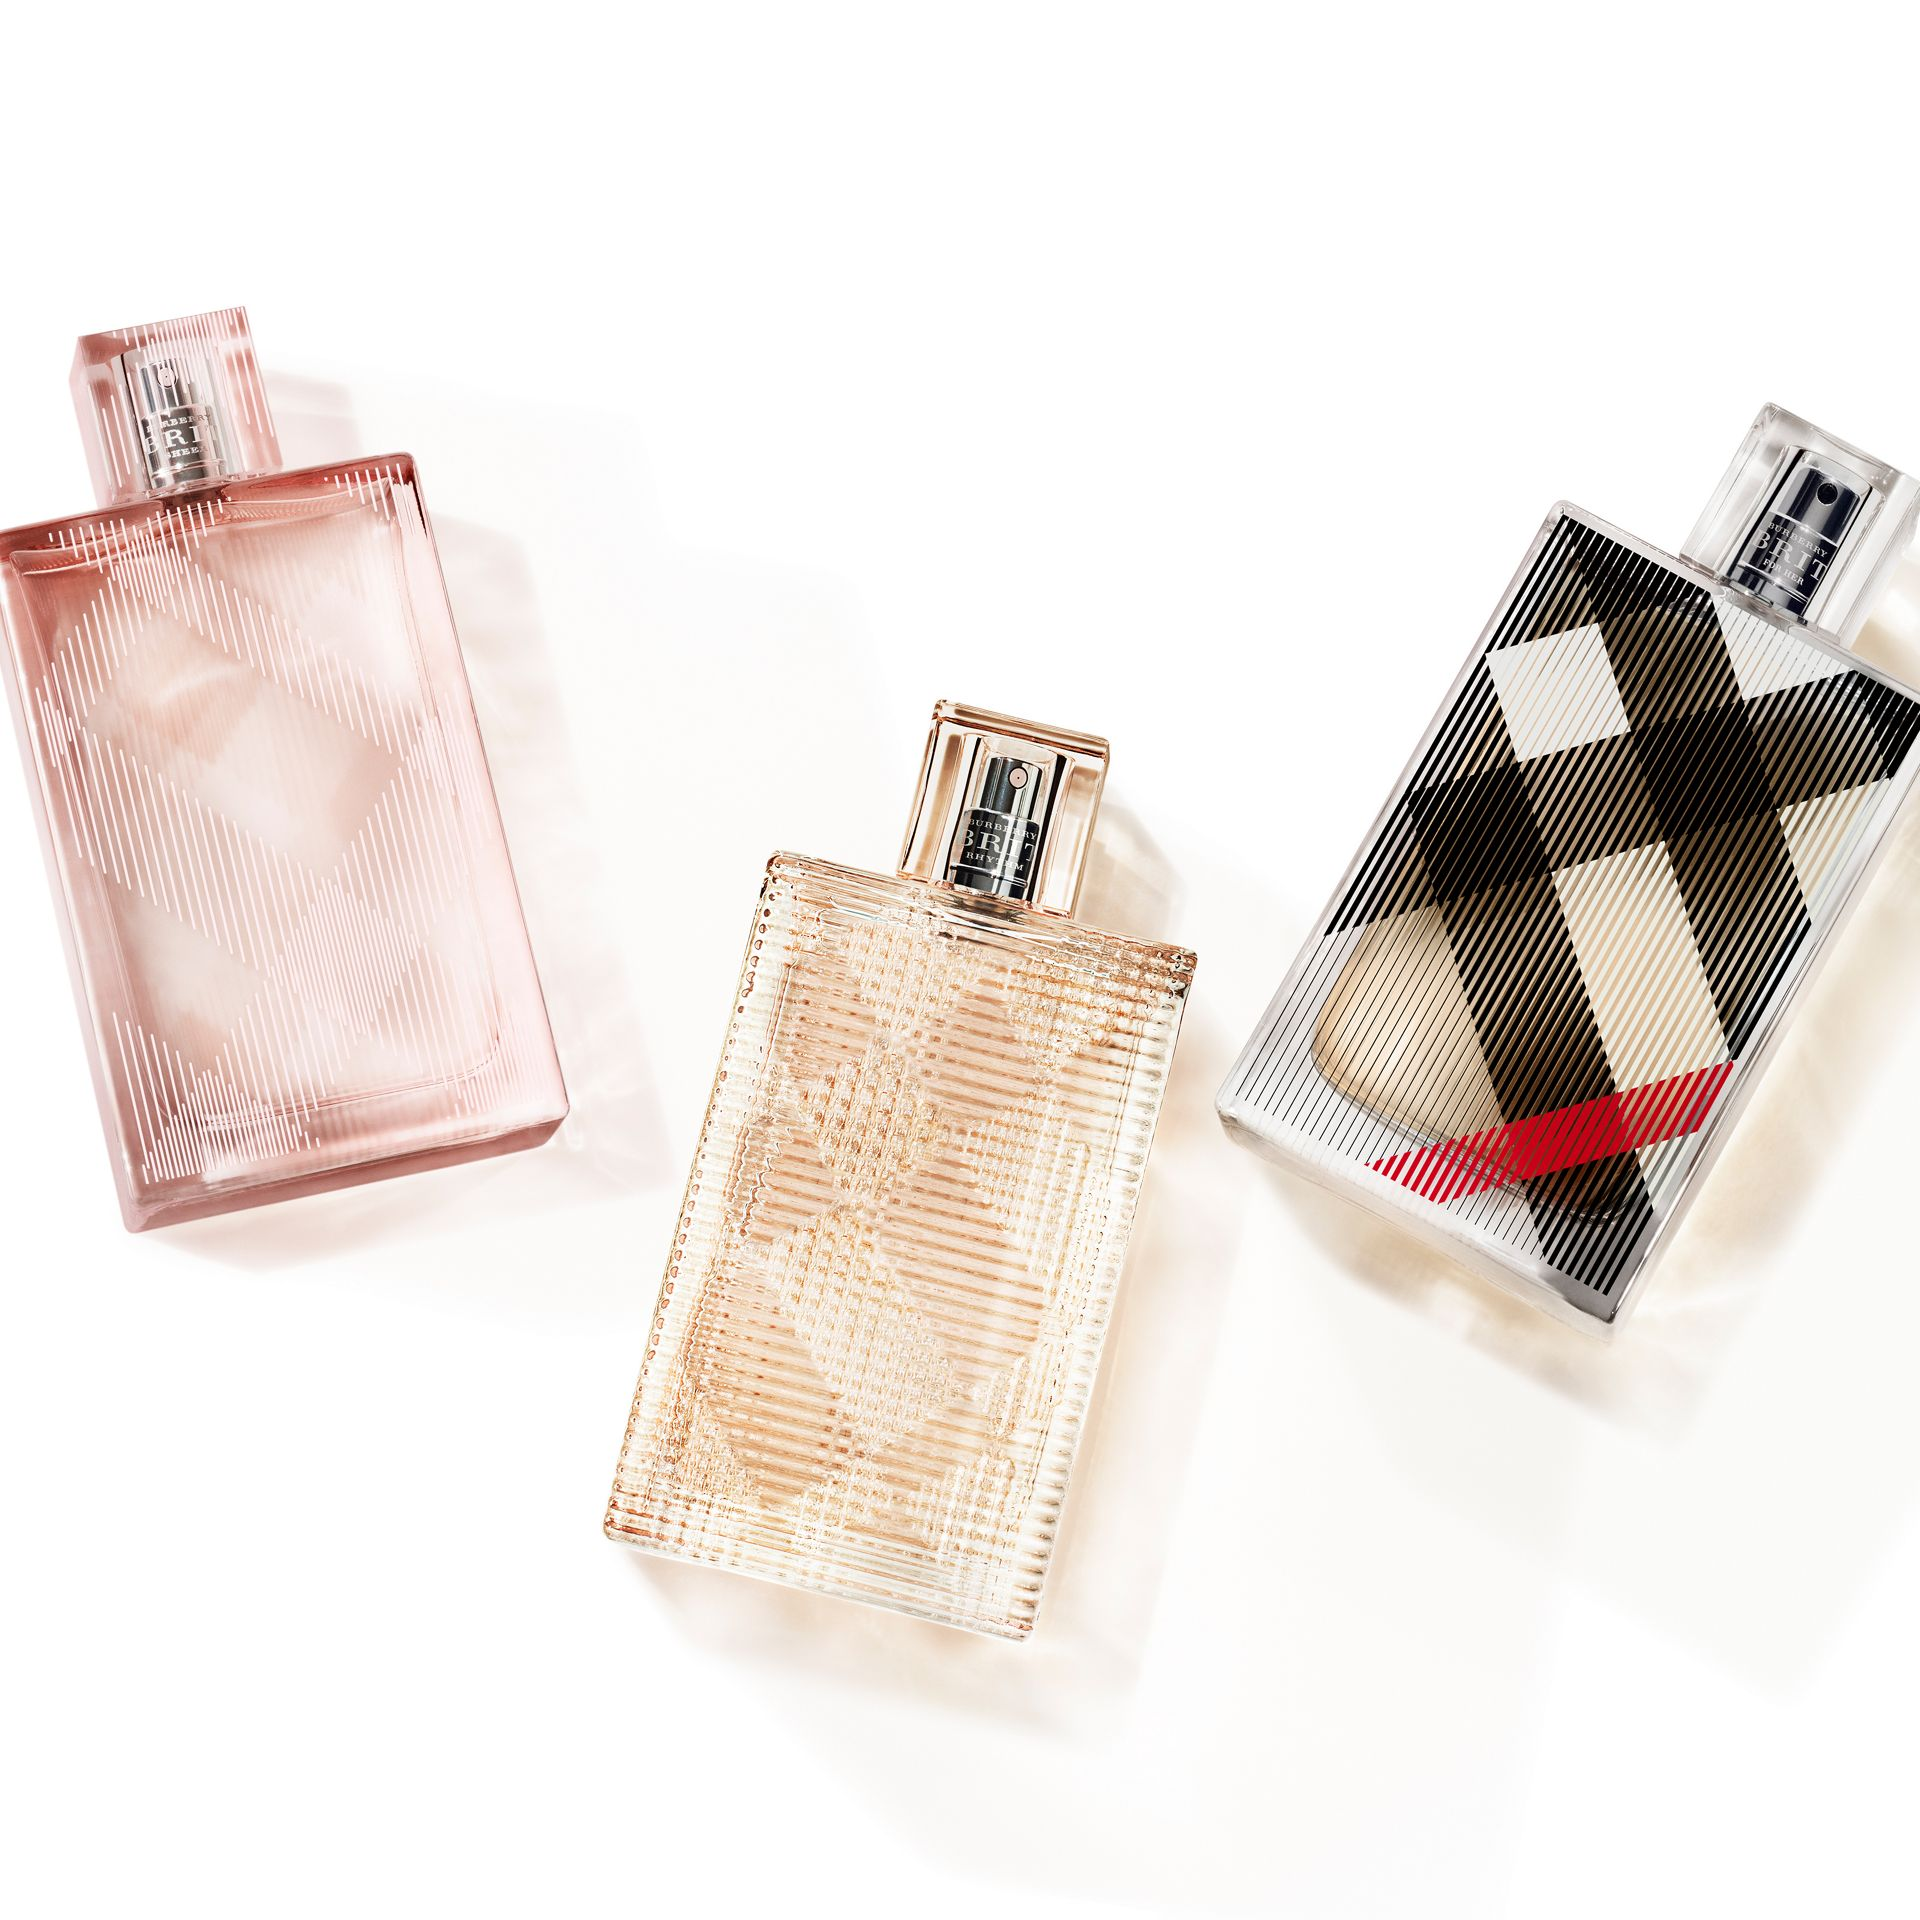 Eau de Toilette Burberry Brit Sheer 100 ml - Femme | Burberry - photo de la galerie 2